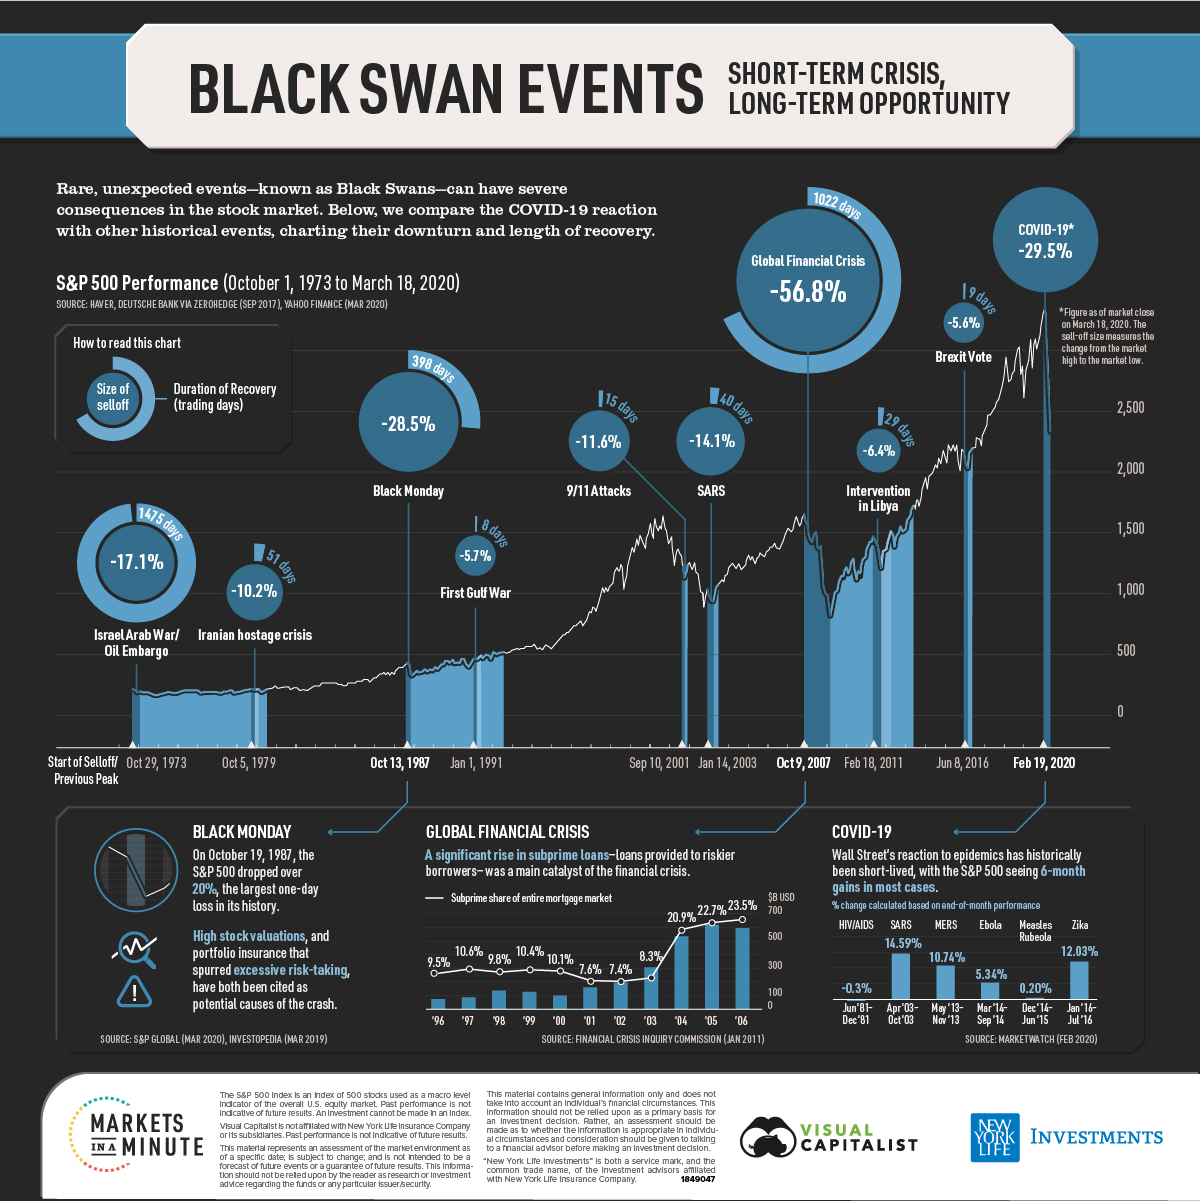 Black Swan Events and time to recovery